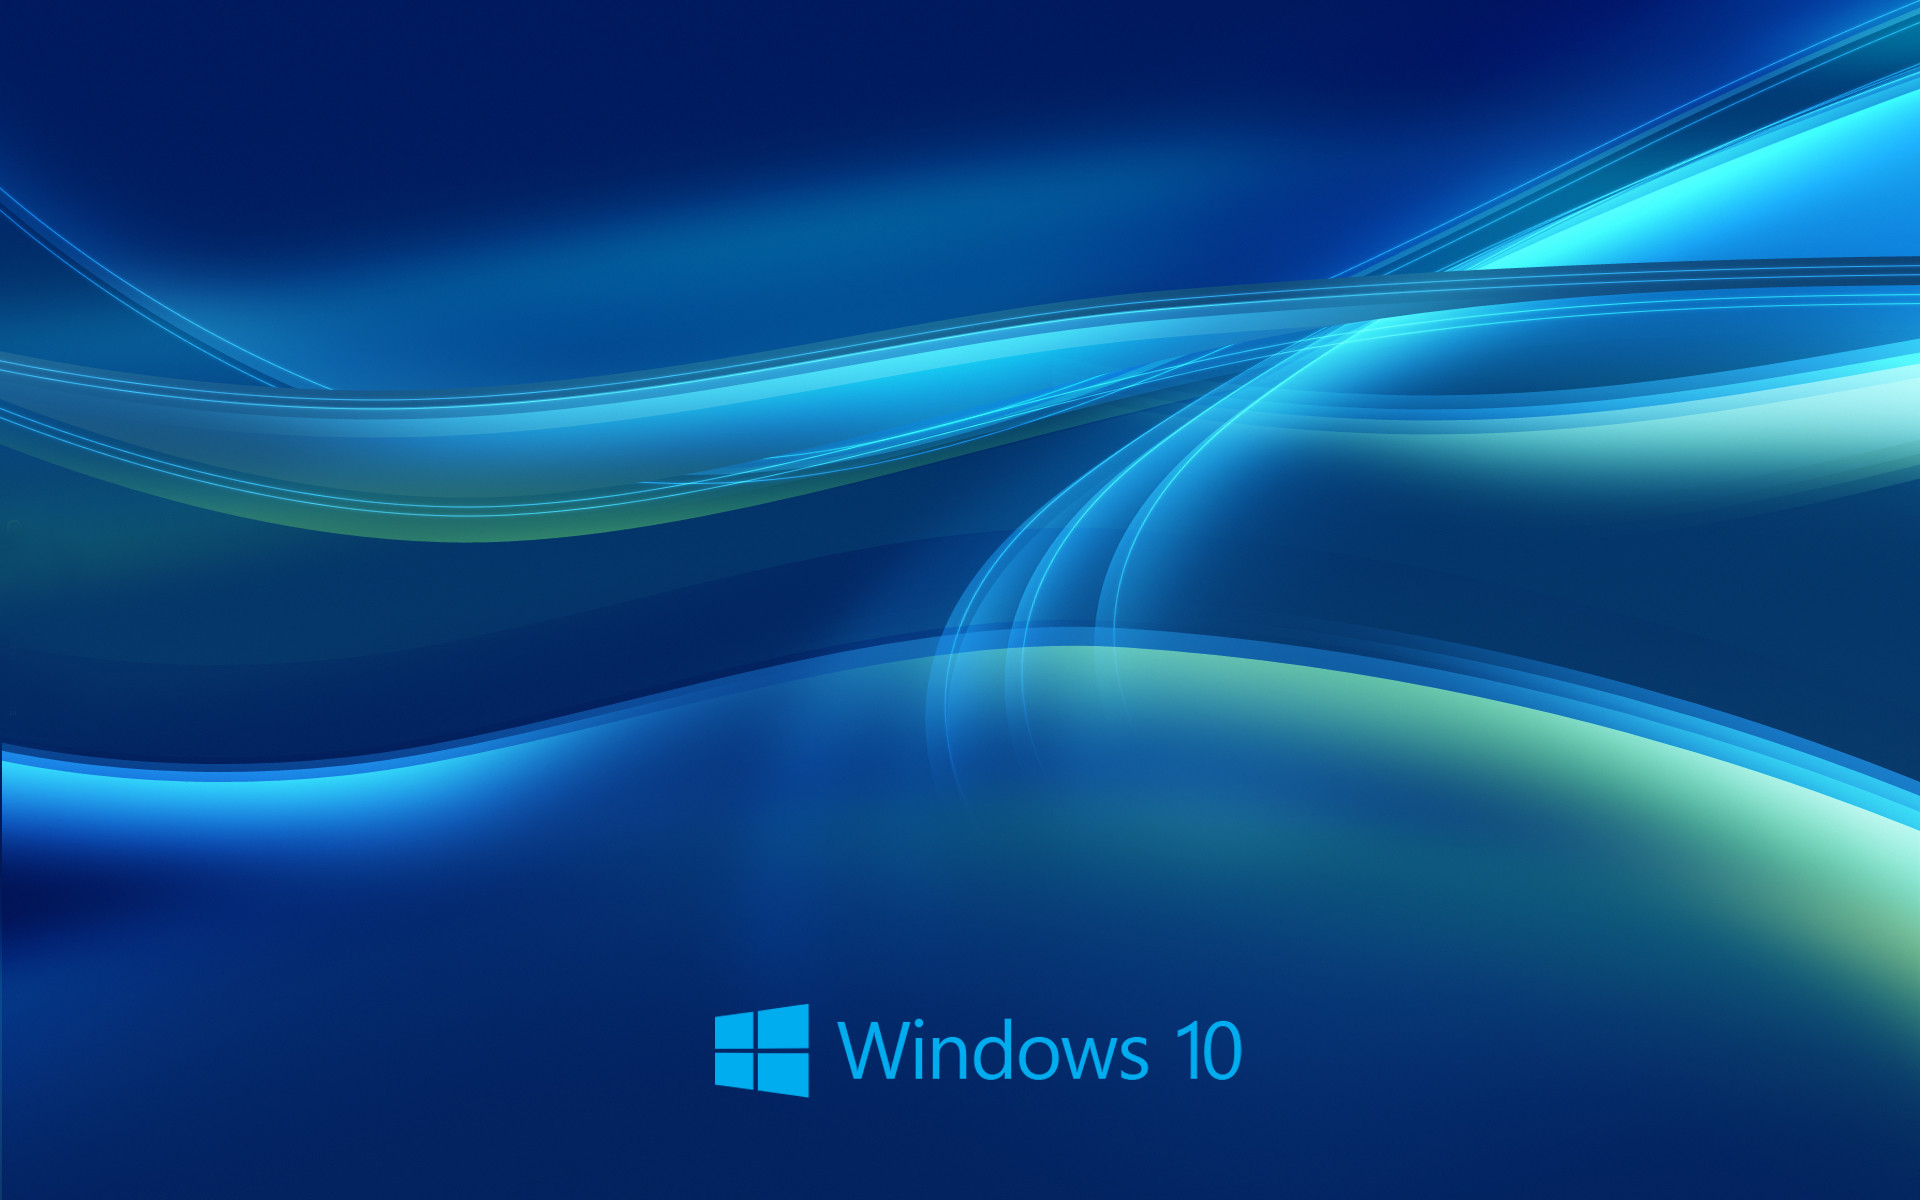 Windows 10 Wallpapers And Themes (76+ Images